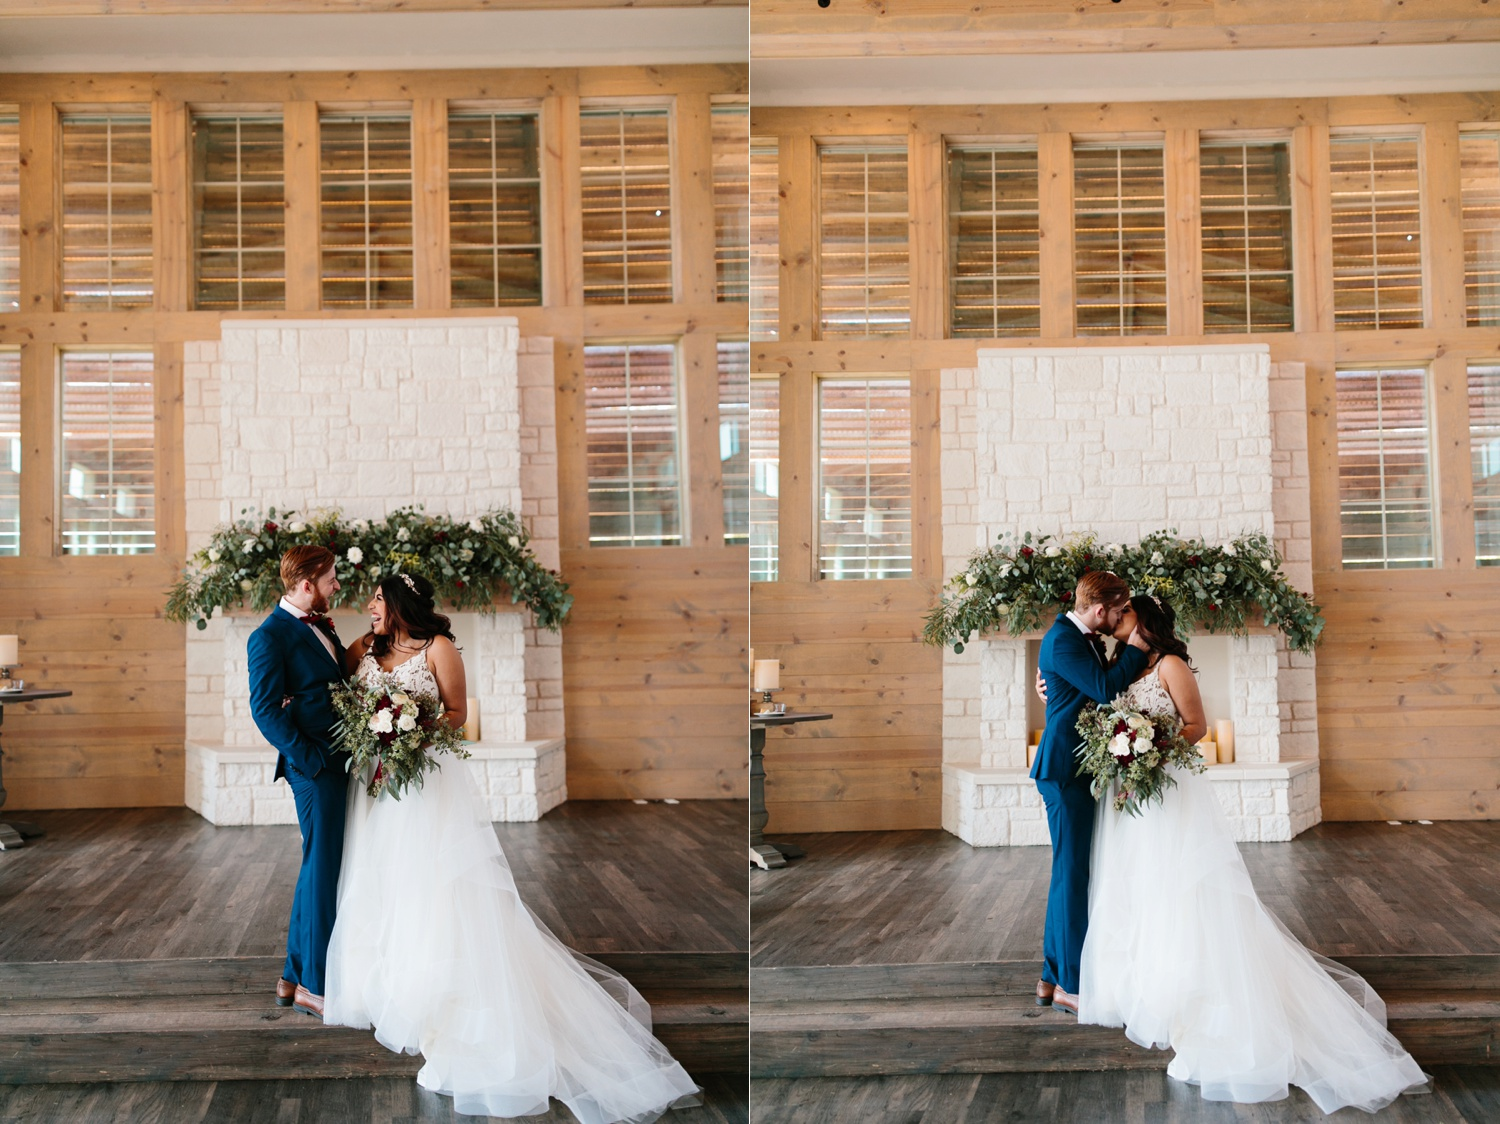 Grant + Lysette | a vibrant, deep burgundy and navy, and mixed metals wedding at Hidden Pines Chapel by North Texas Wedding Photographer Rachel Meagan Photography 127